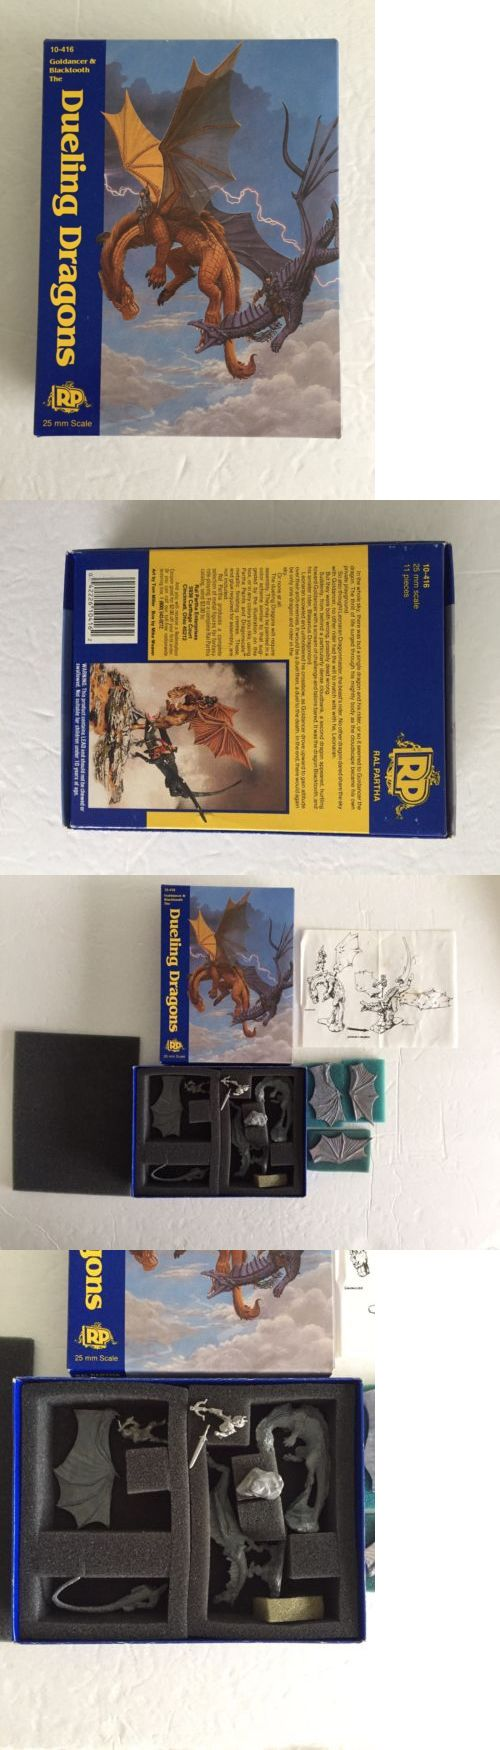 Ral Partha 16489: Ral Partha Dueling Dragons Metal Miniature Kit Goldancer And Blacktooth Adandd*Rare* -> BUY IT NOW ONLY: $85 on eBay!